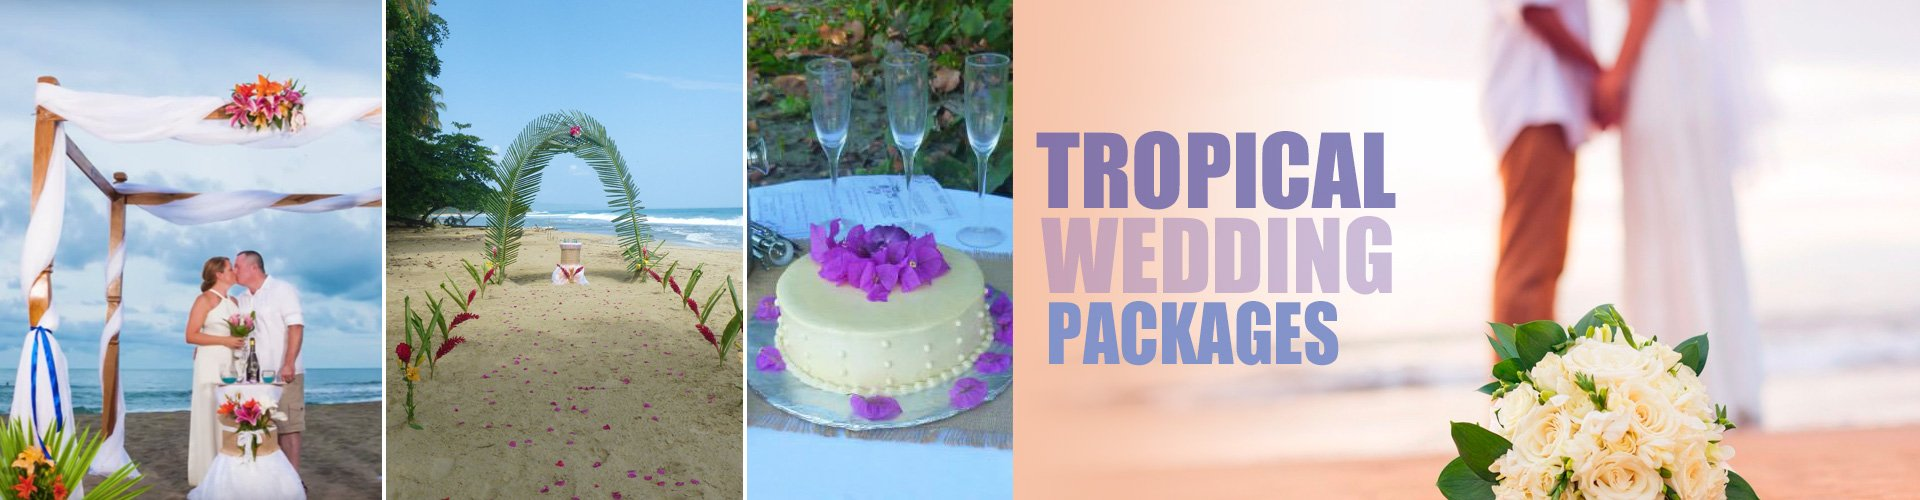 Tropical Wedding Packages